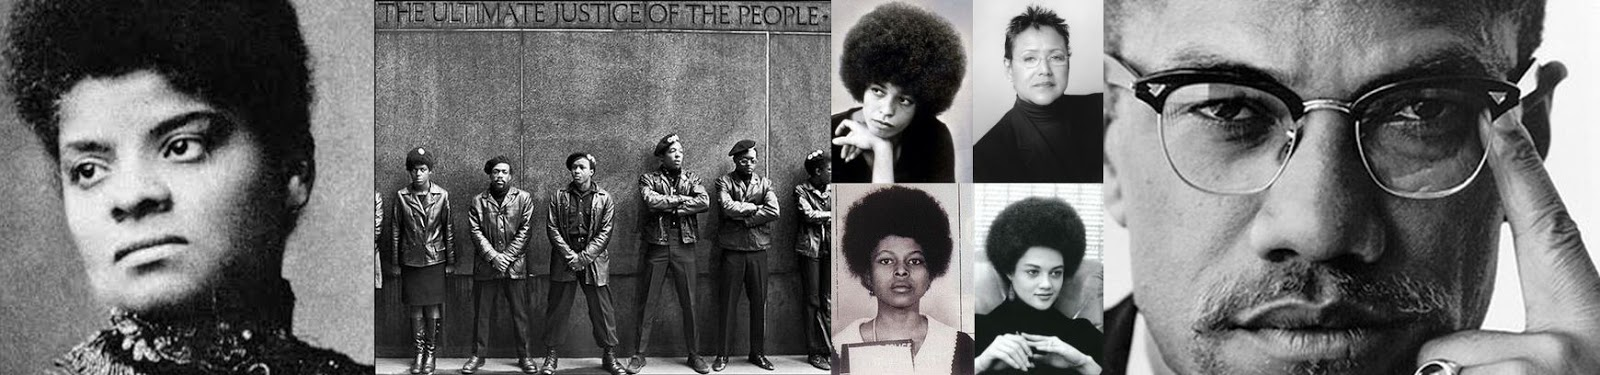 I'm looking to get in touch with famous Black Panthers.Anyone got any ideas/addresses/methods to get in touch?